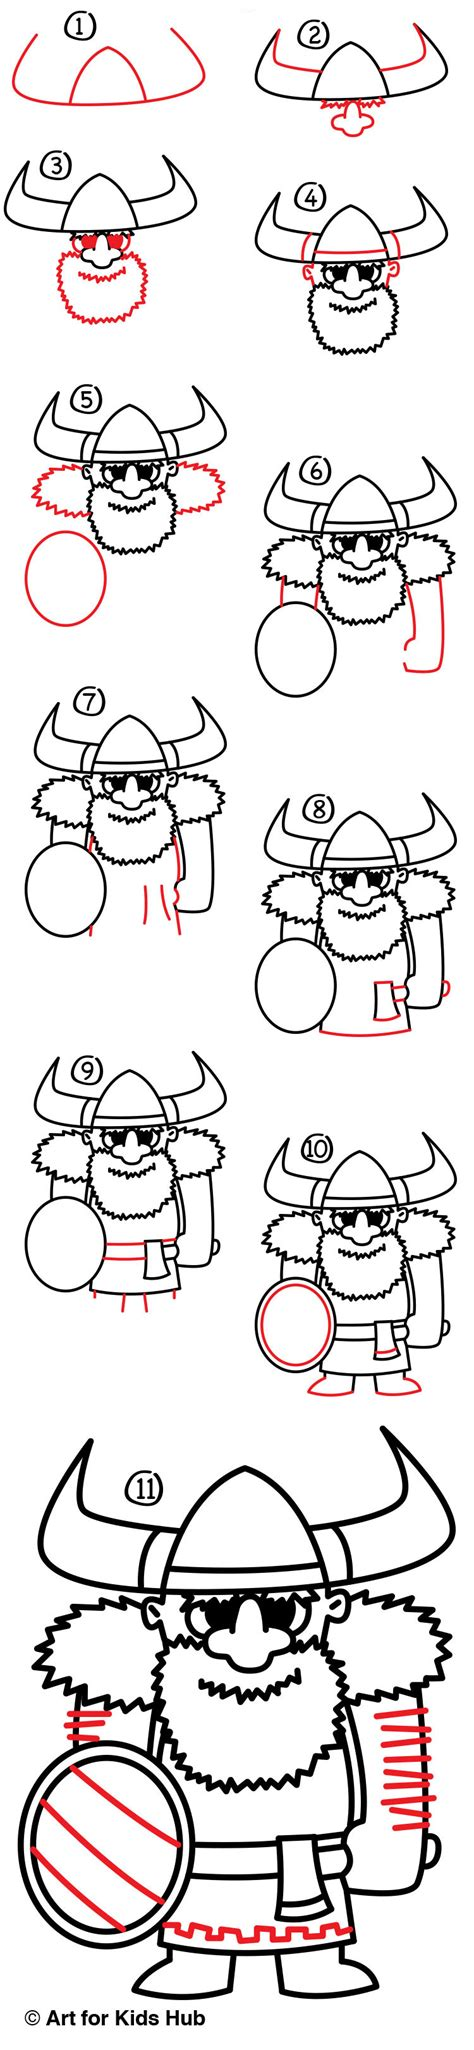 how to draw a viking boat step by step how to draw a viking art for kids hub